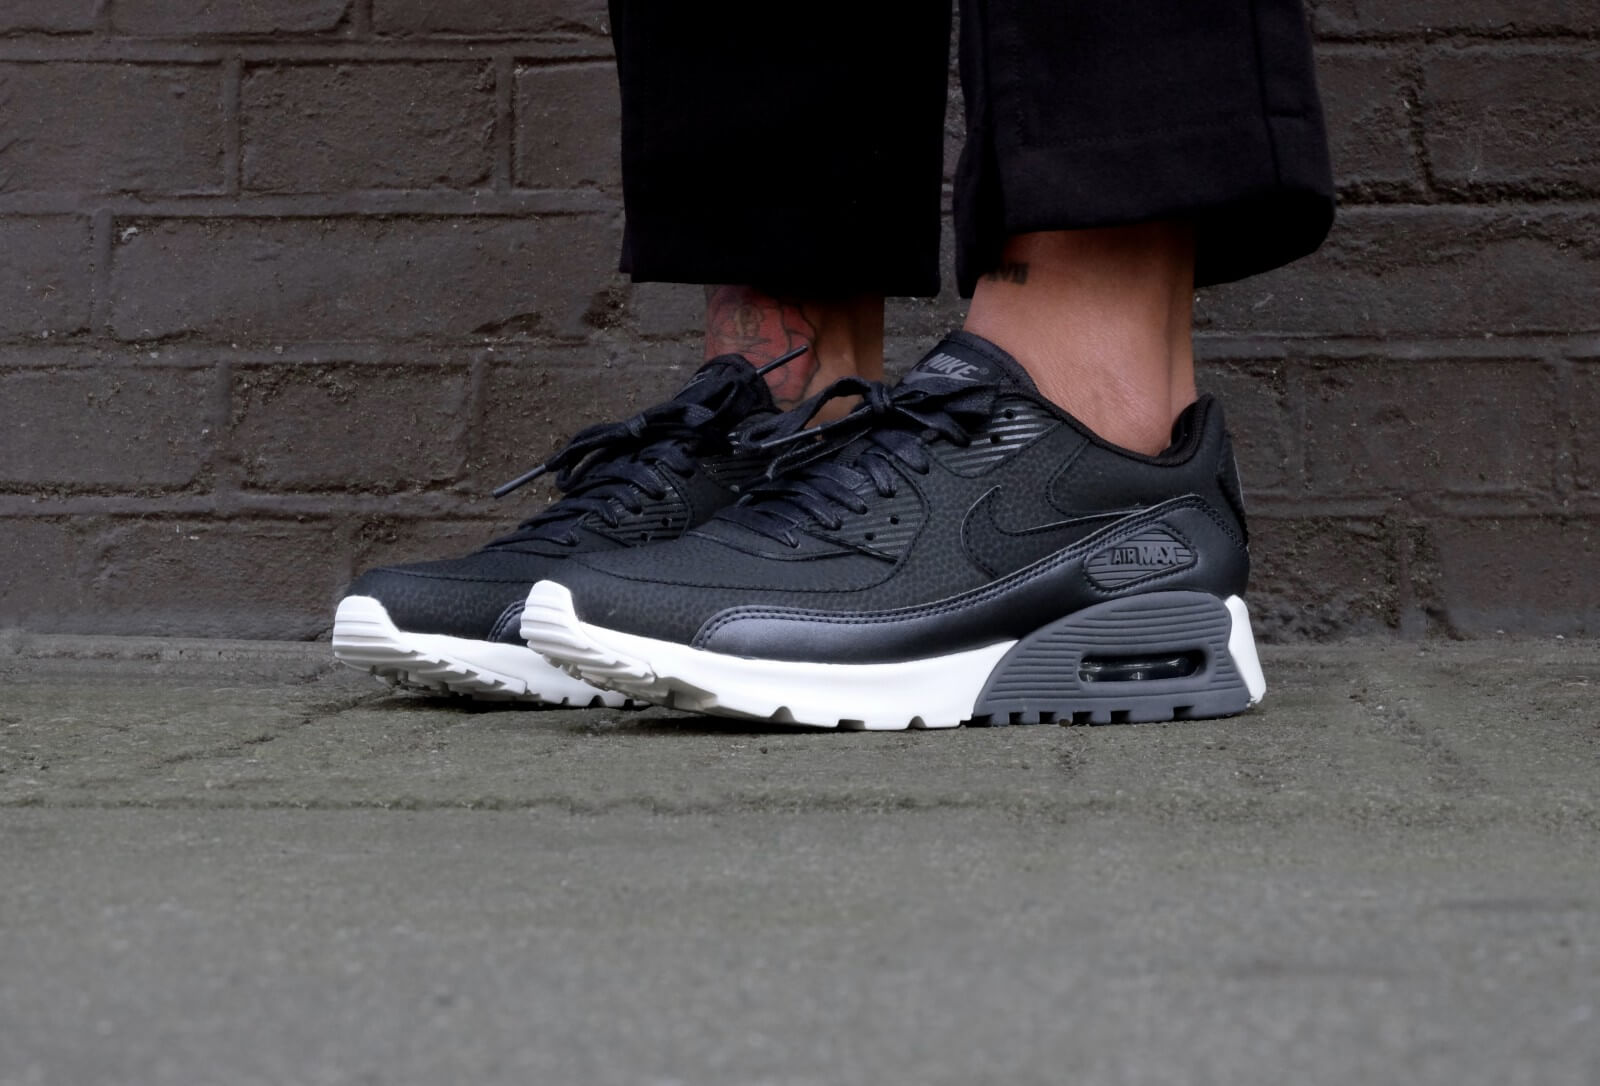 Nike WMNS Air Max 90 Ultra SE Deep Pewter White 859523 200